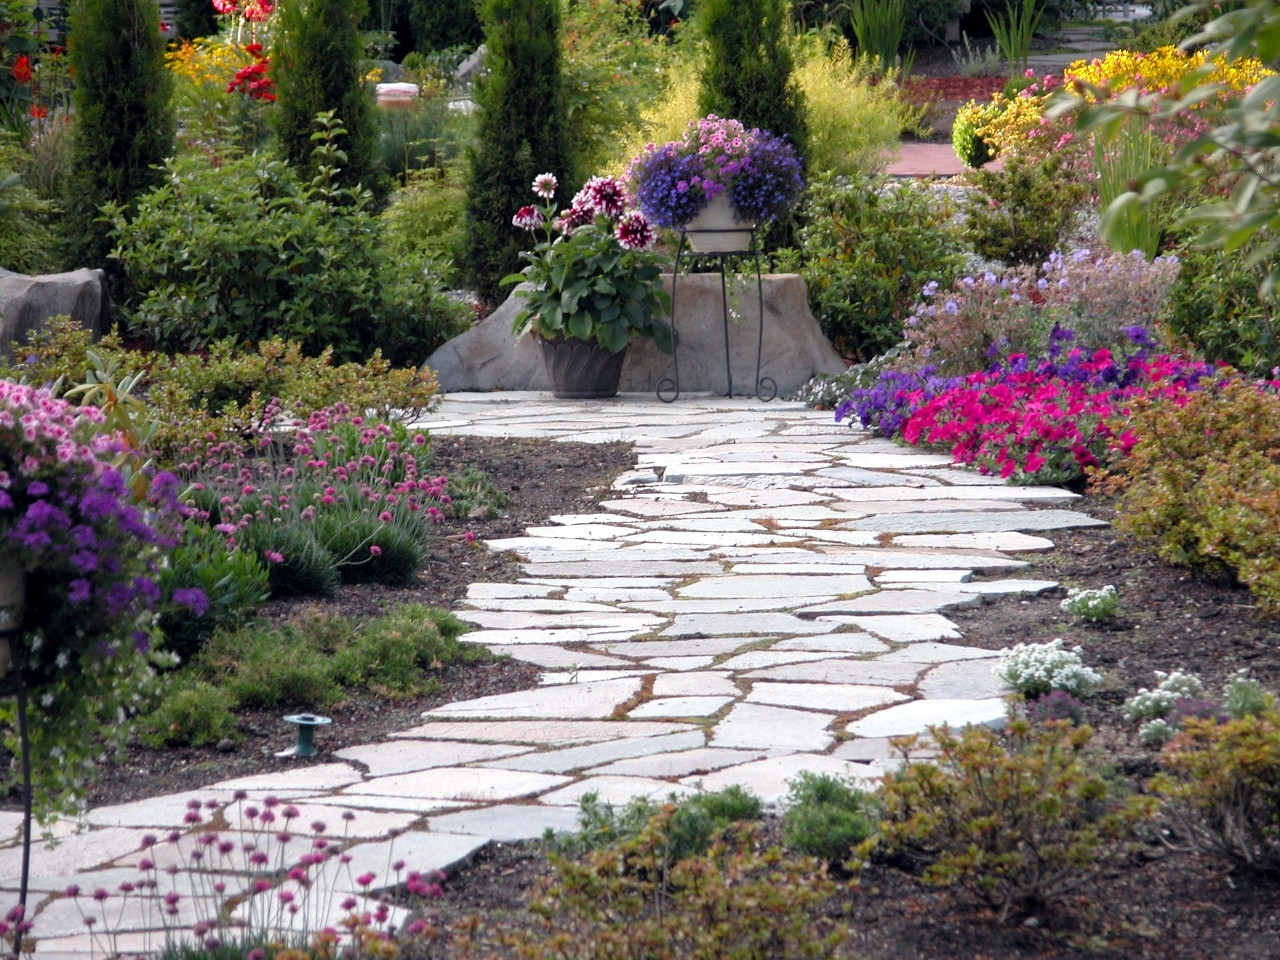 When You Move Into A New Home Or Want To Update The One Have Planning Garden Is Great Way Personalize It Fit Your Style